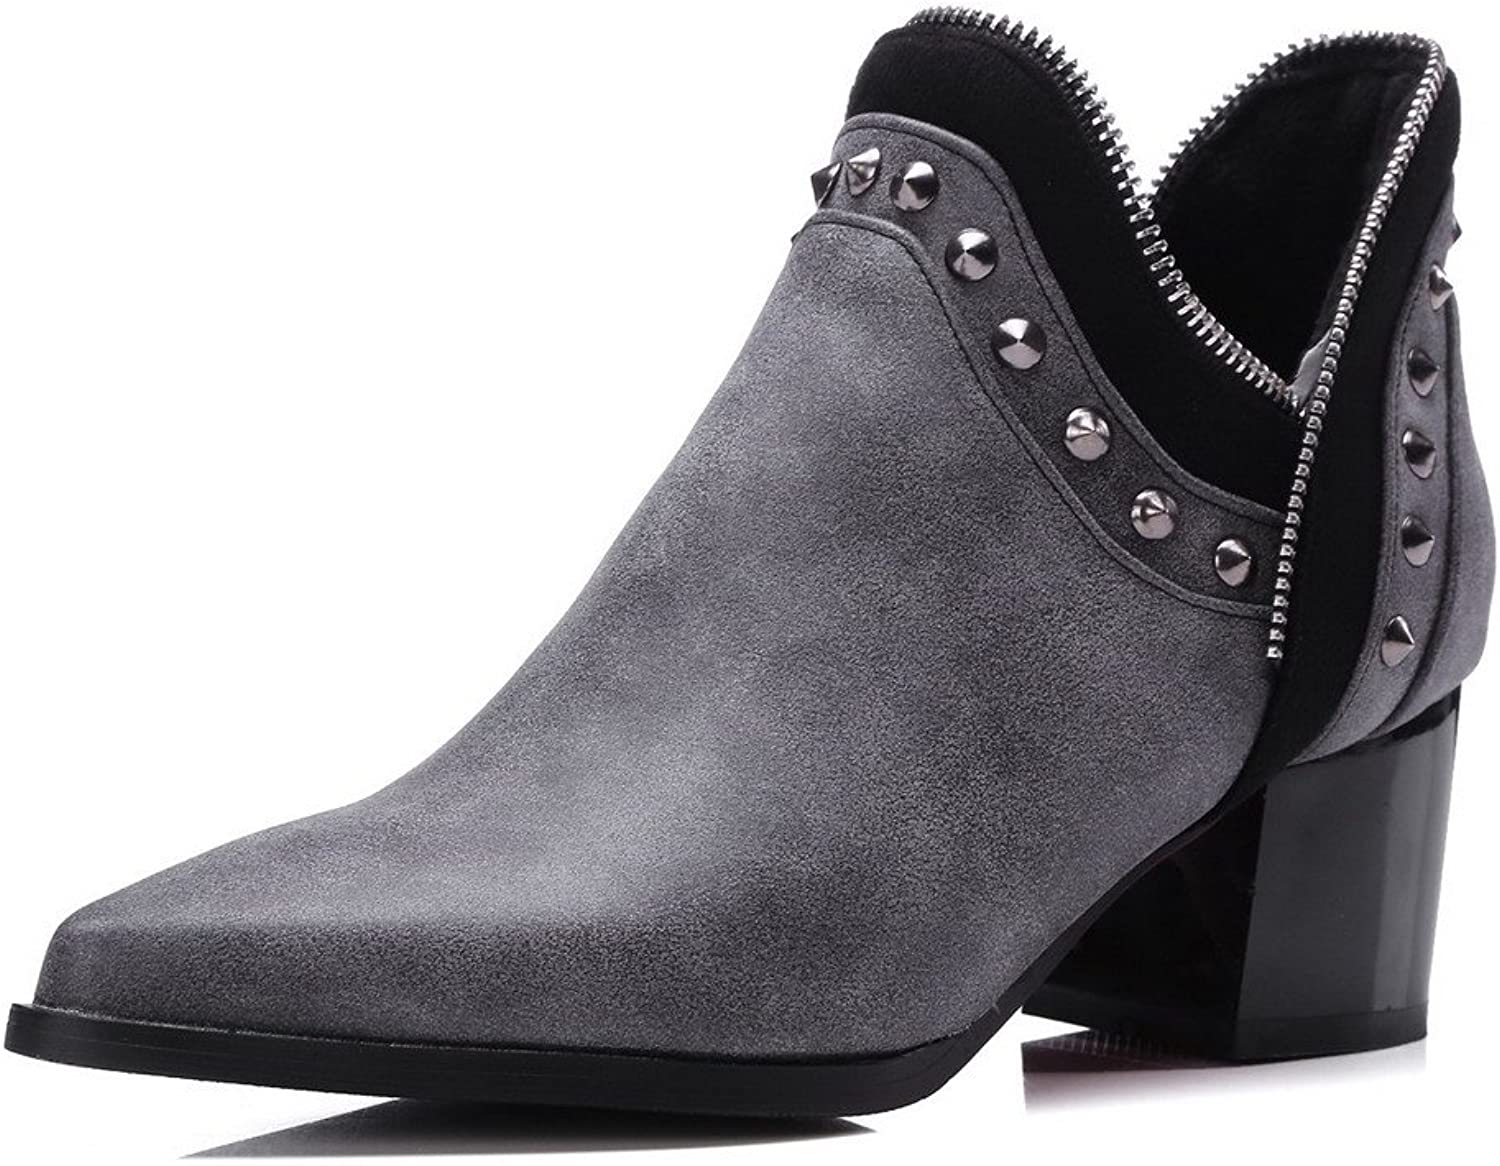 WeiPoot Women's Pull On Kitten Heels Pu Solid Ankle High Boots